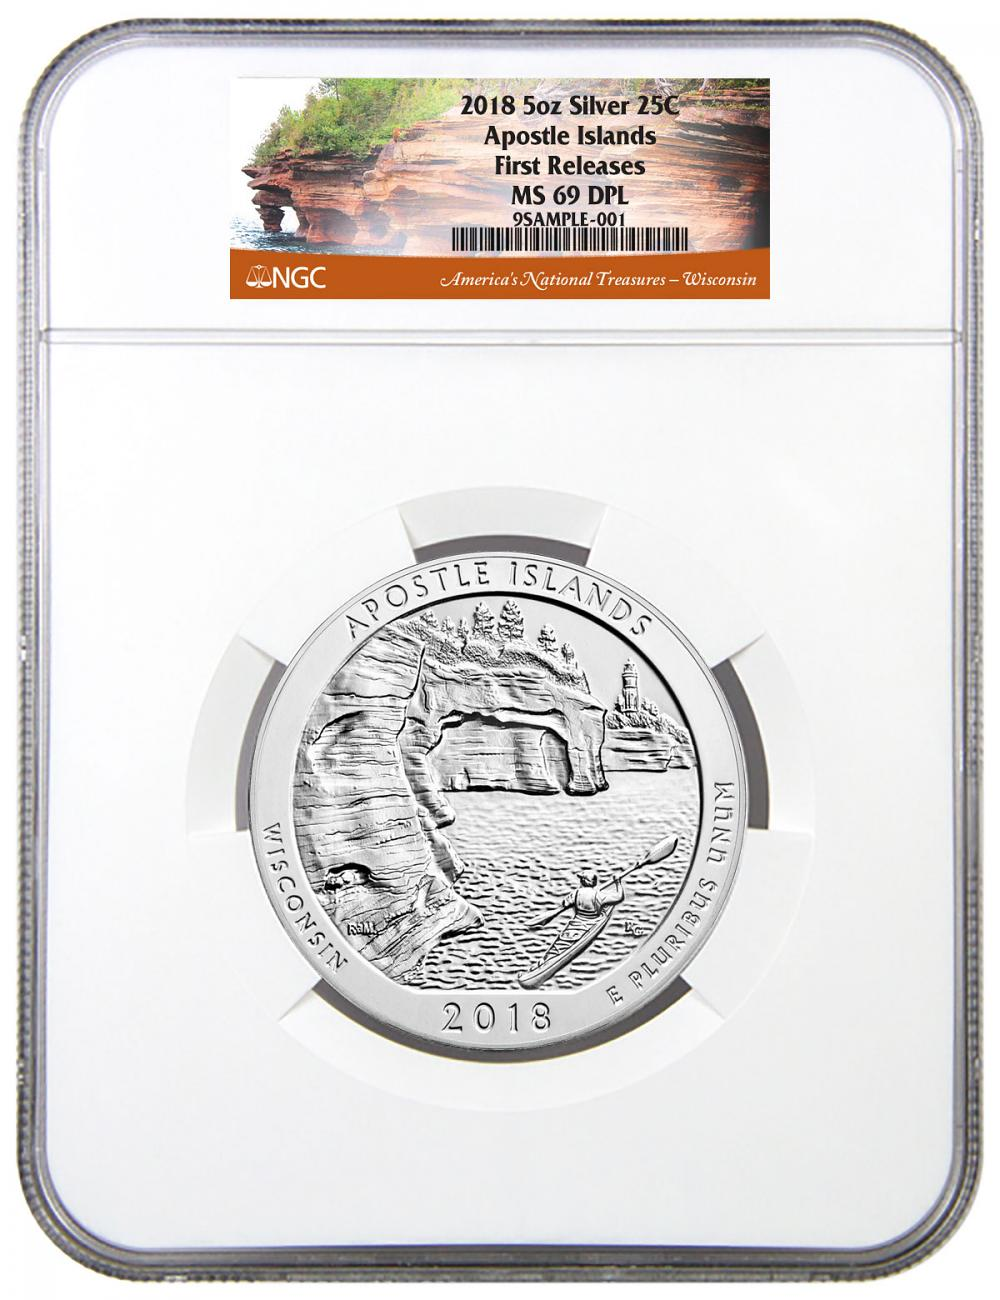 2018 Apostle Islands 5 oz. Silver America the Beautiful Coin NGC MS69 DPL FR